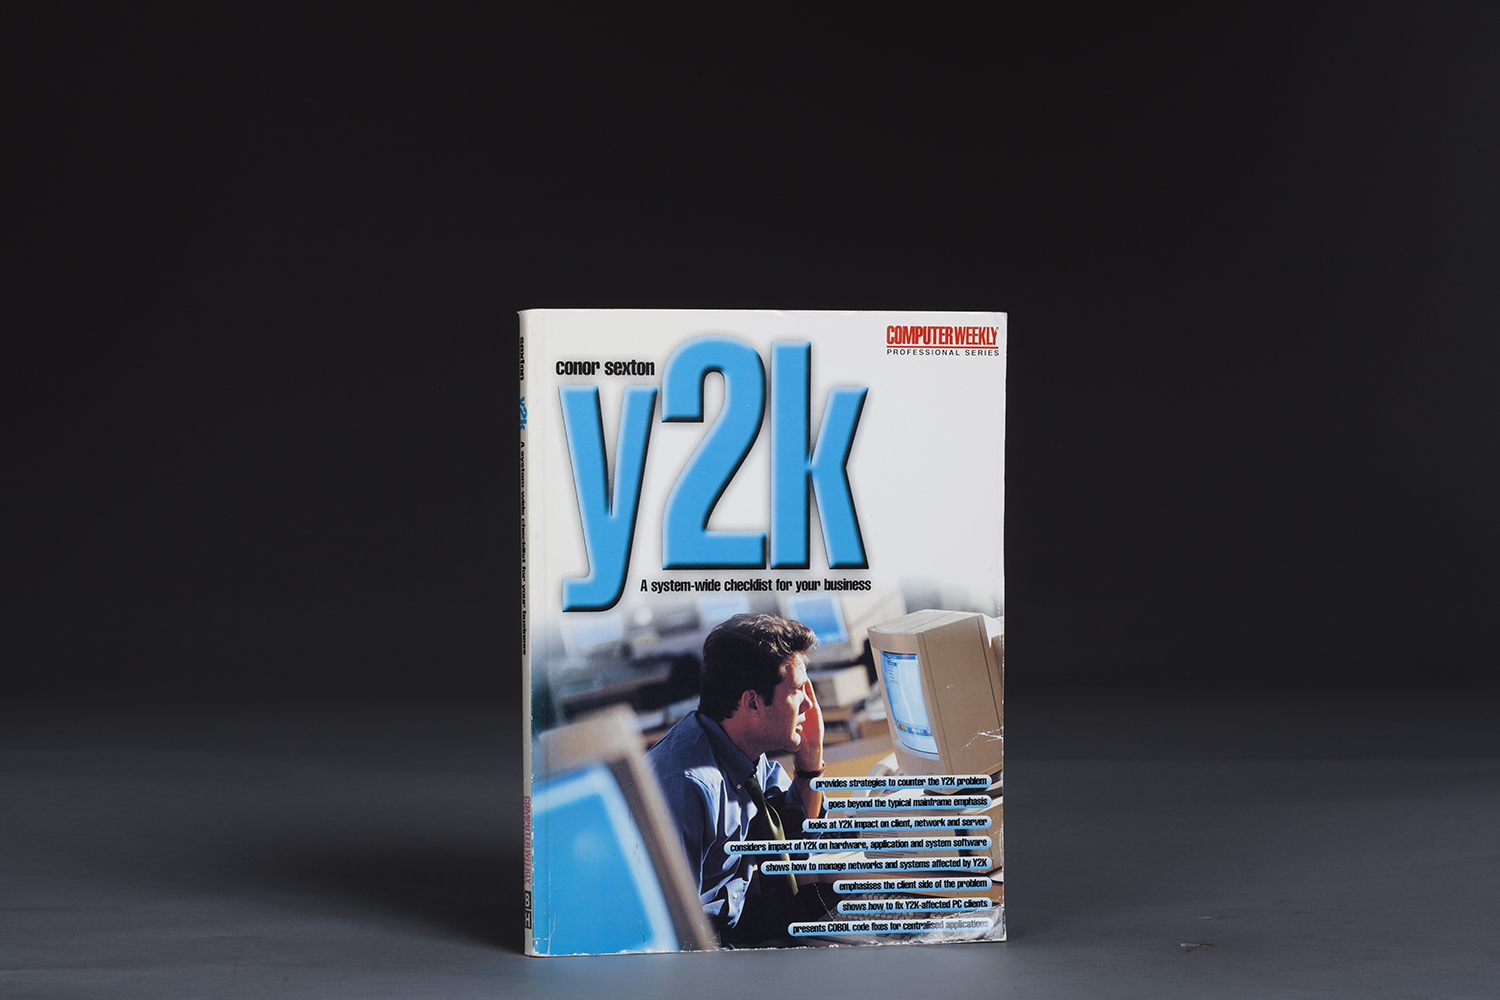 Y2K - A System-wide Checklist for Your Business - 1010 Cover.jpg